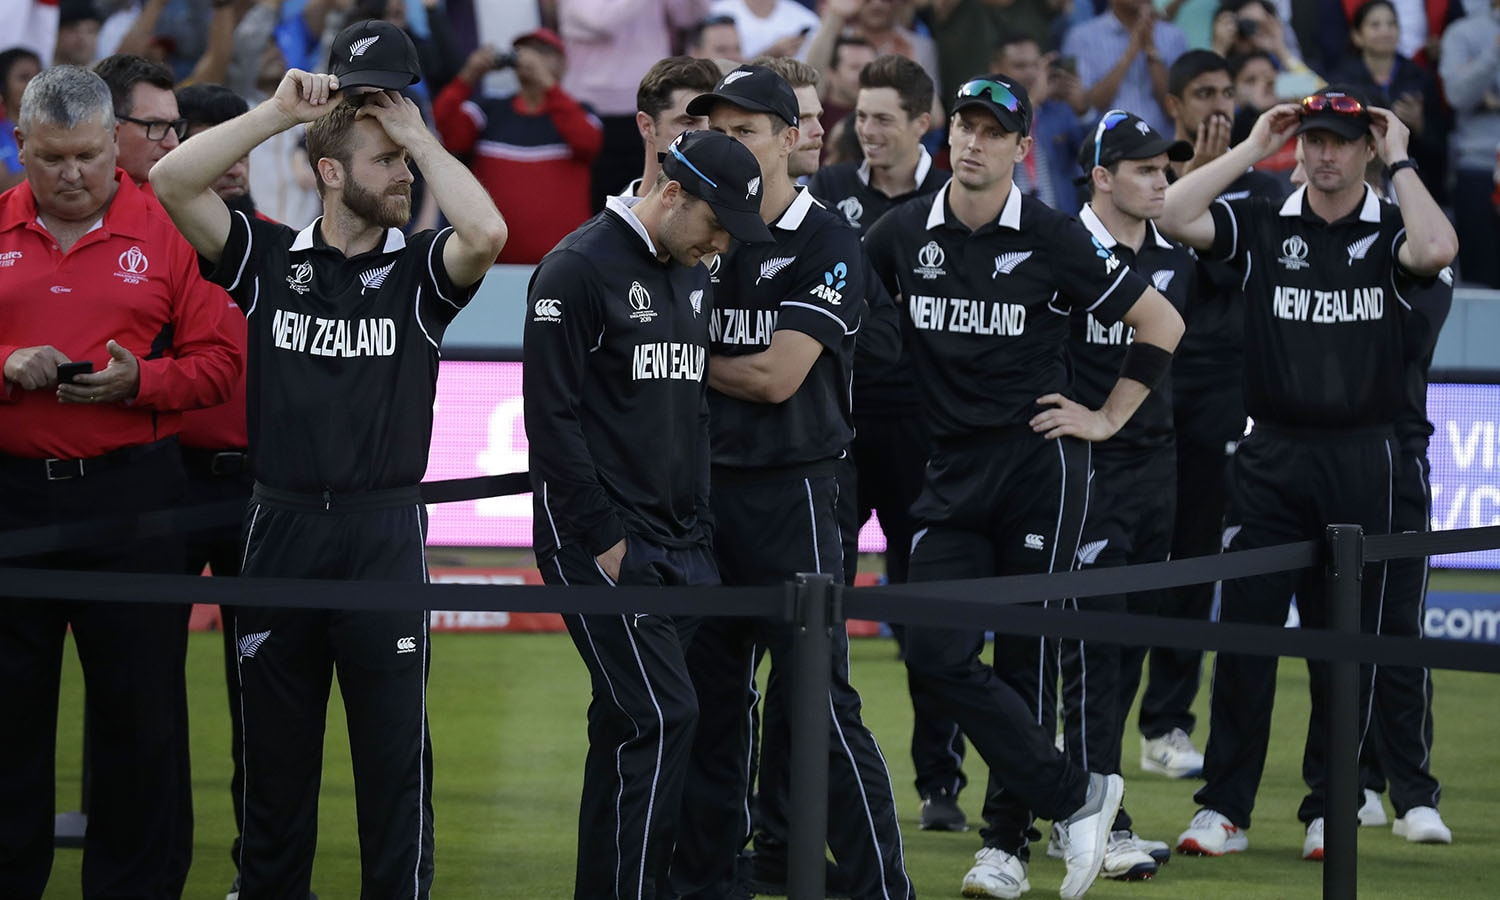 New Zealand's captain Kane Williamson stands with his players as he waits for the trophy presentation after losing the Cricket World Cup final match between England and New Zealand. — AP